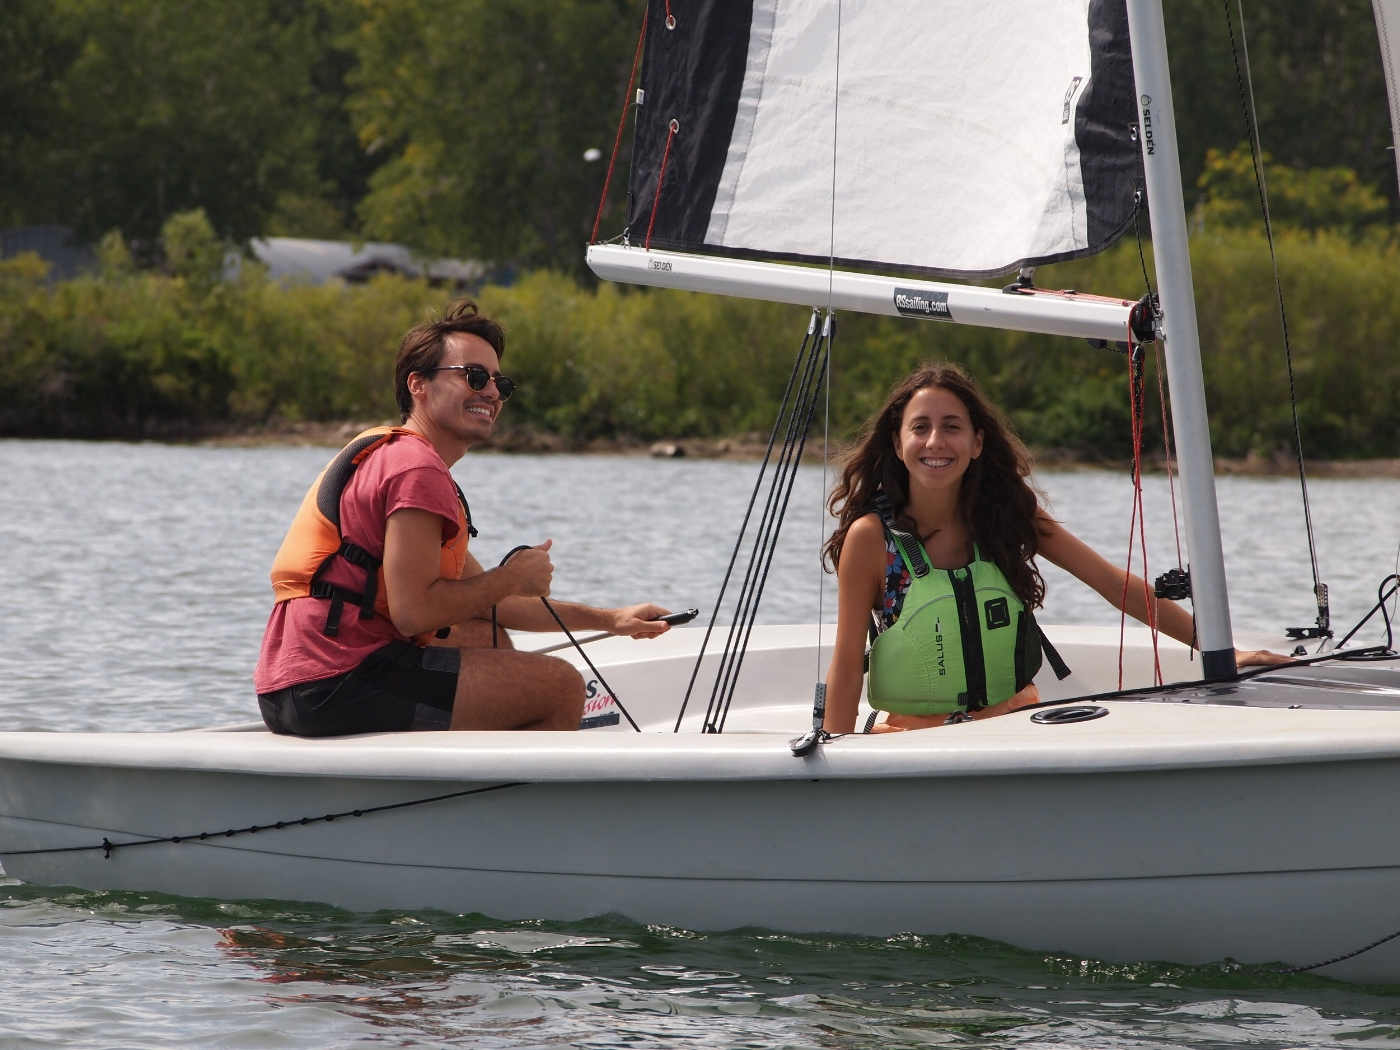 Sailing Fanatics - start sailing with CANSail 1 learn to sail beginner sailing class to learn to basics of sailing